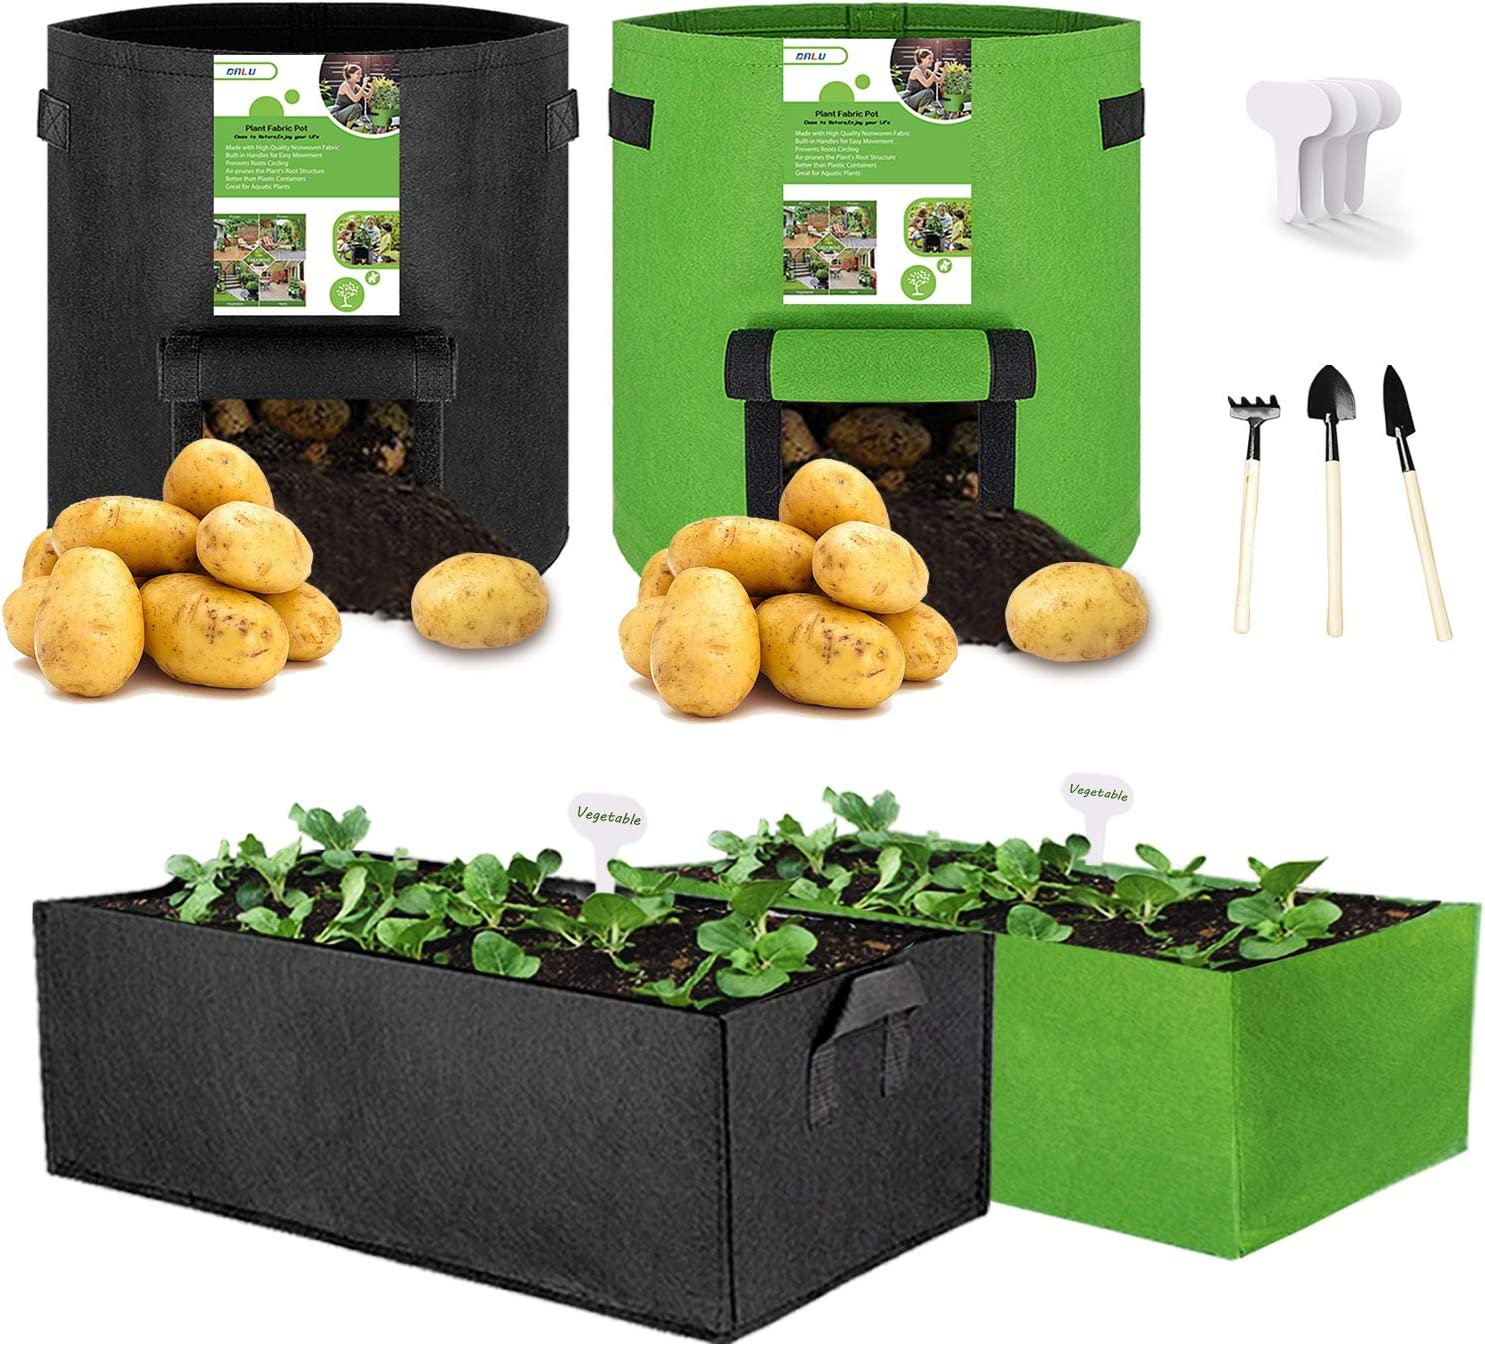 DALV Grow Bags 10 Gallon 4 Pack, Thickened Nonwoven Fabric Pots Heavy Duty Aeration Plant Grow Bag with Handles 3 Digging Tools 4 Labels